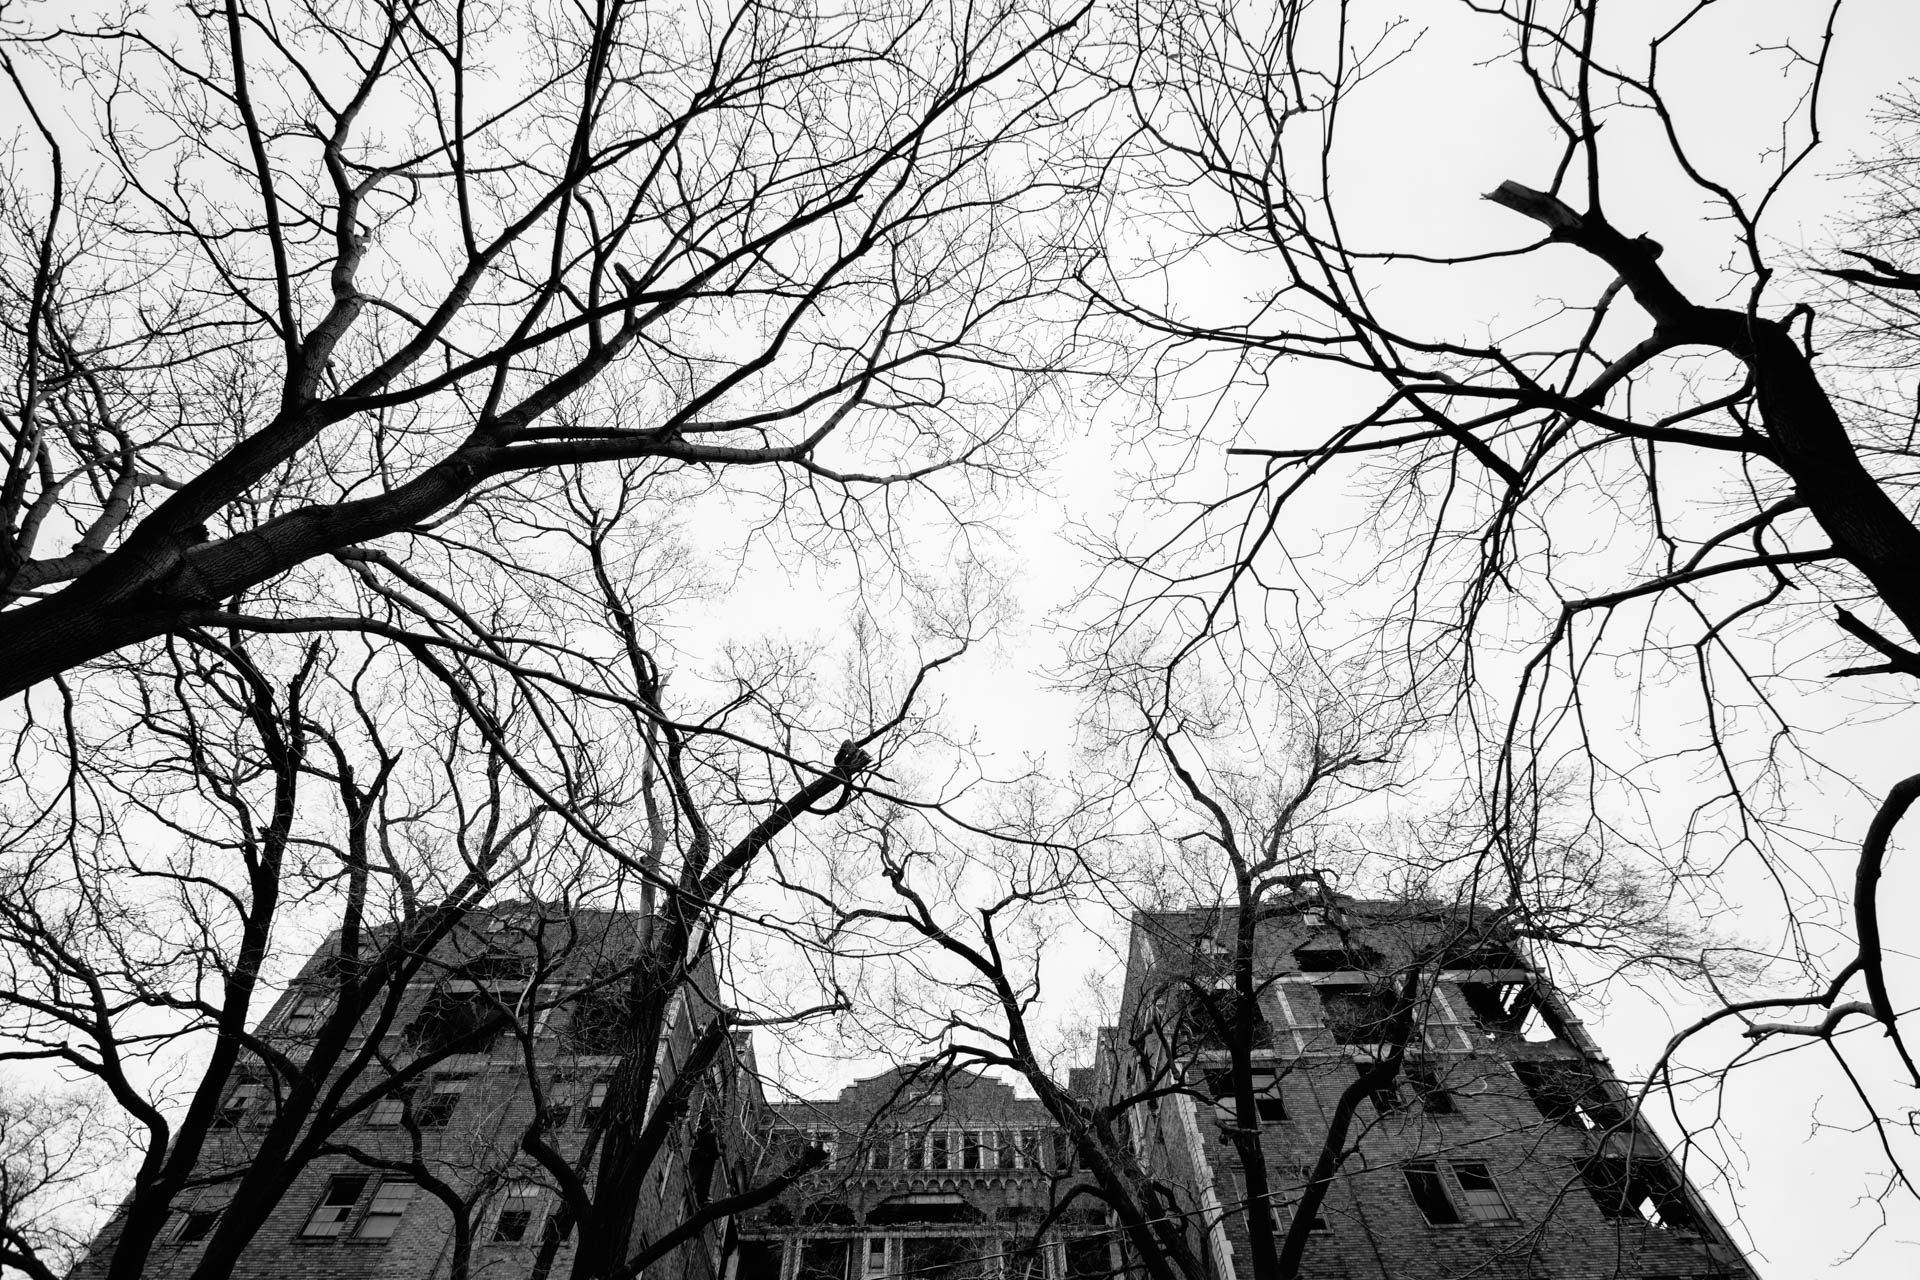 vacant-eerie-apartment-building-surrounded-by-dead-trees-gary